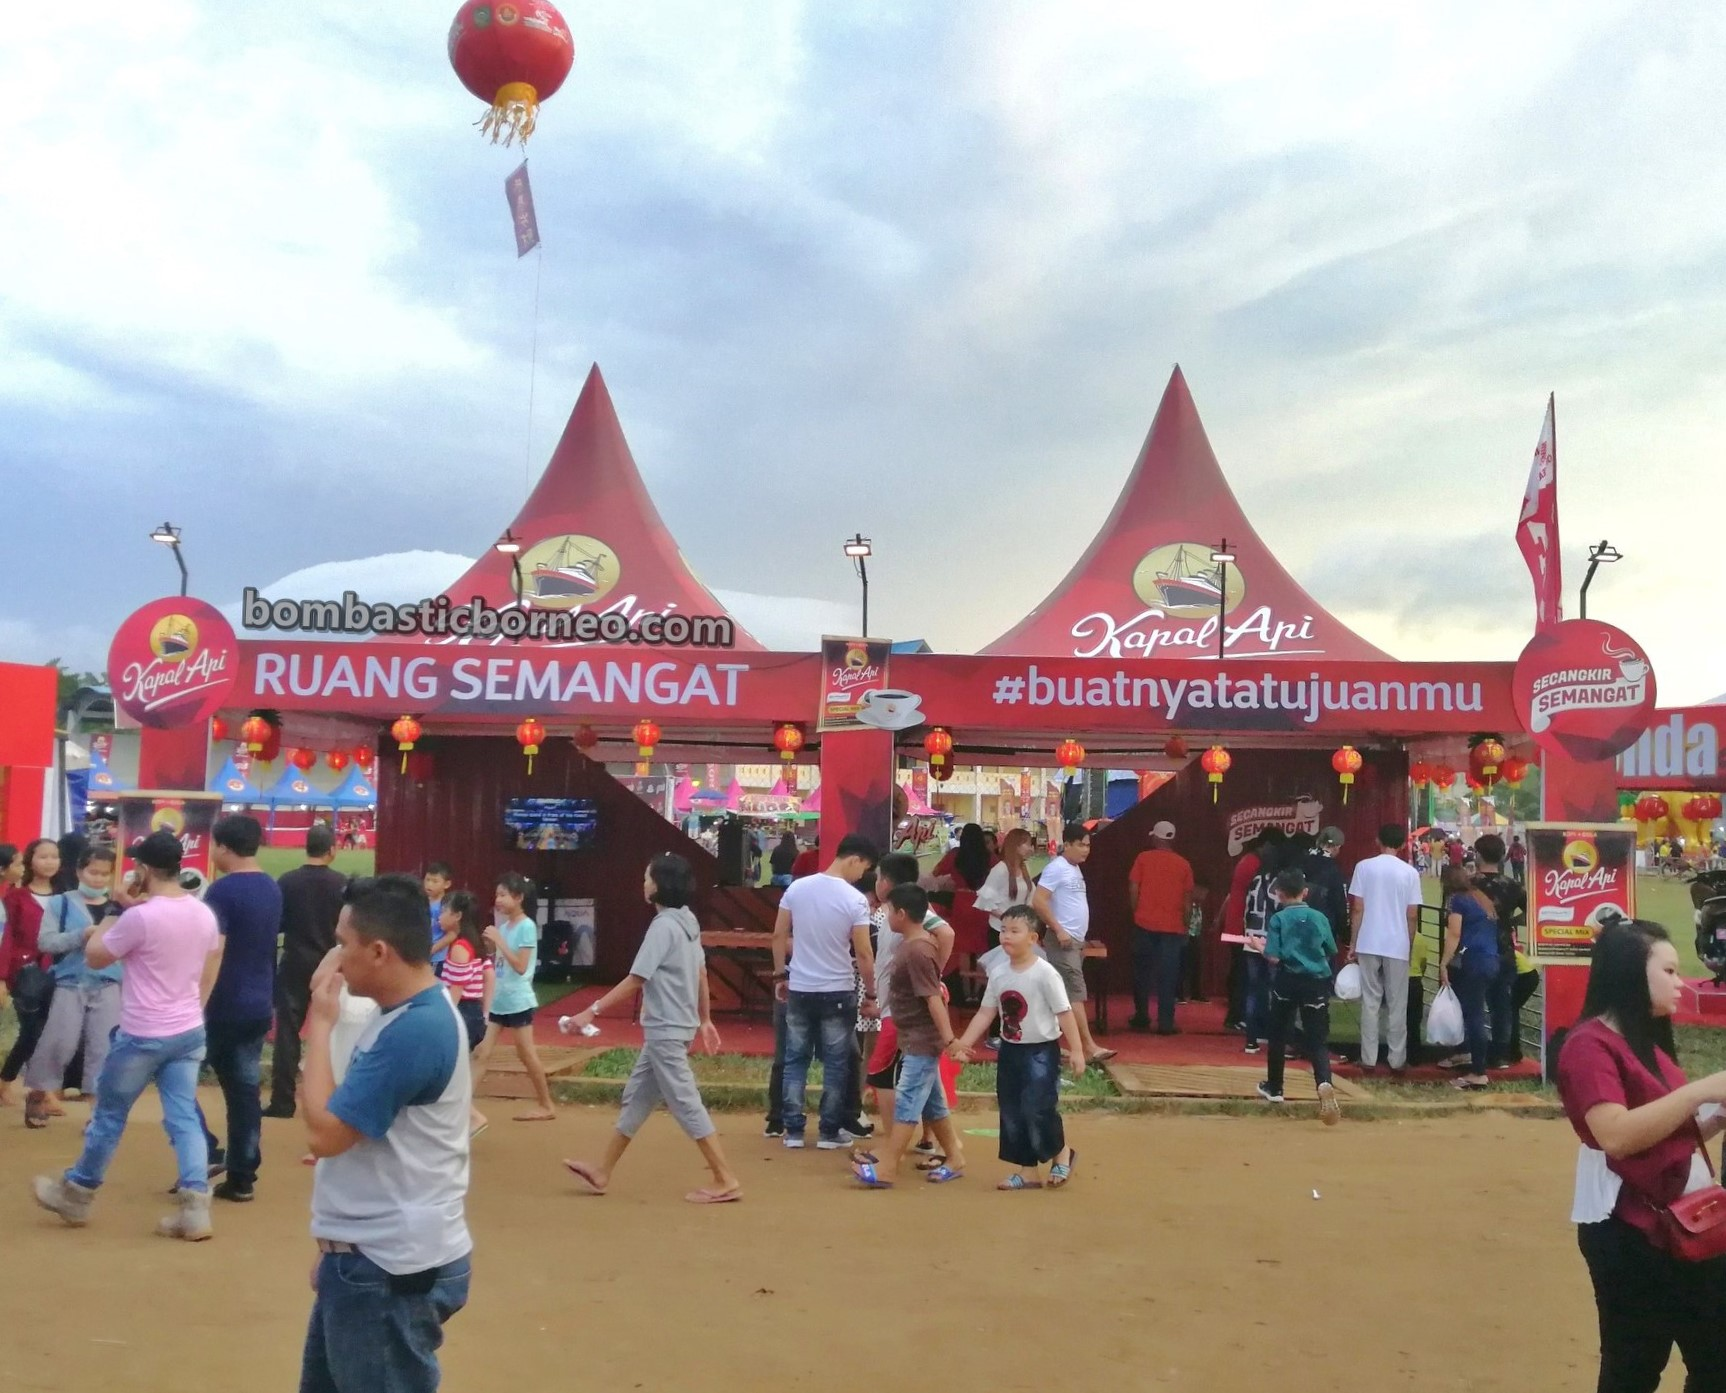 Stadion Kridasana, culture, Chinese New Year, festival, backpackers, destination, Indonesia, Kalimantan Barat, Tourism, tourist attraction, travel guide, Trans Borneo,